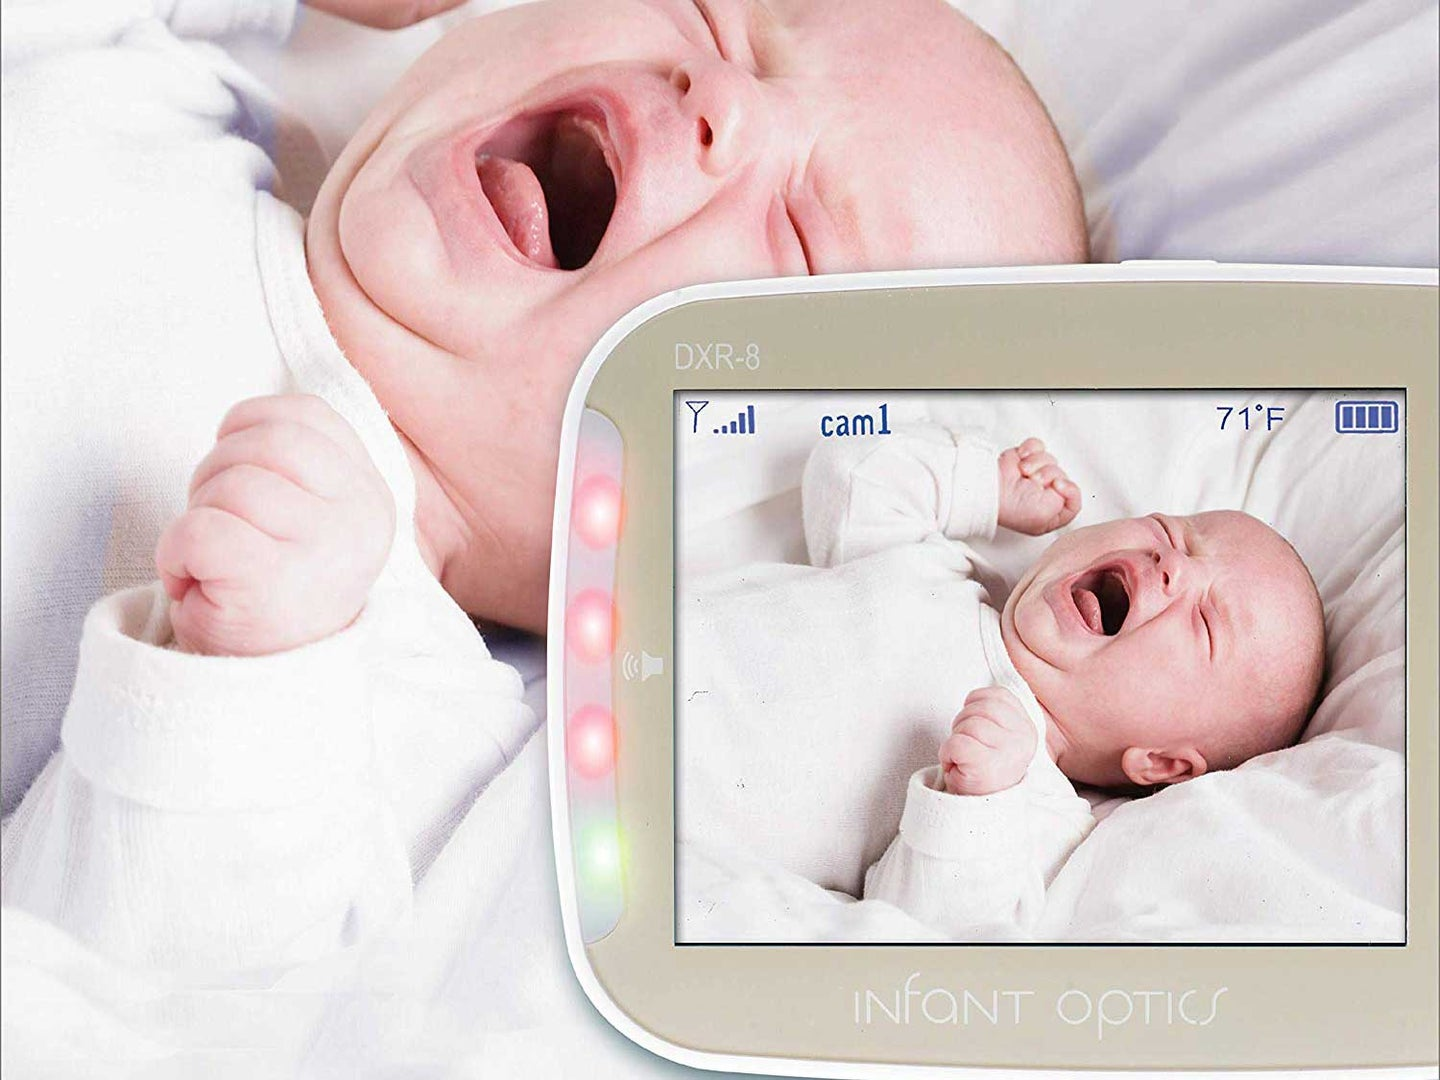 Baby cries watched by baby monitor